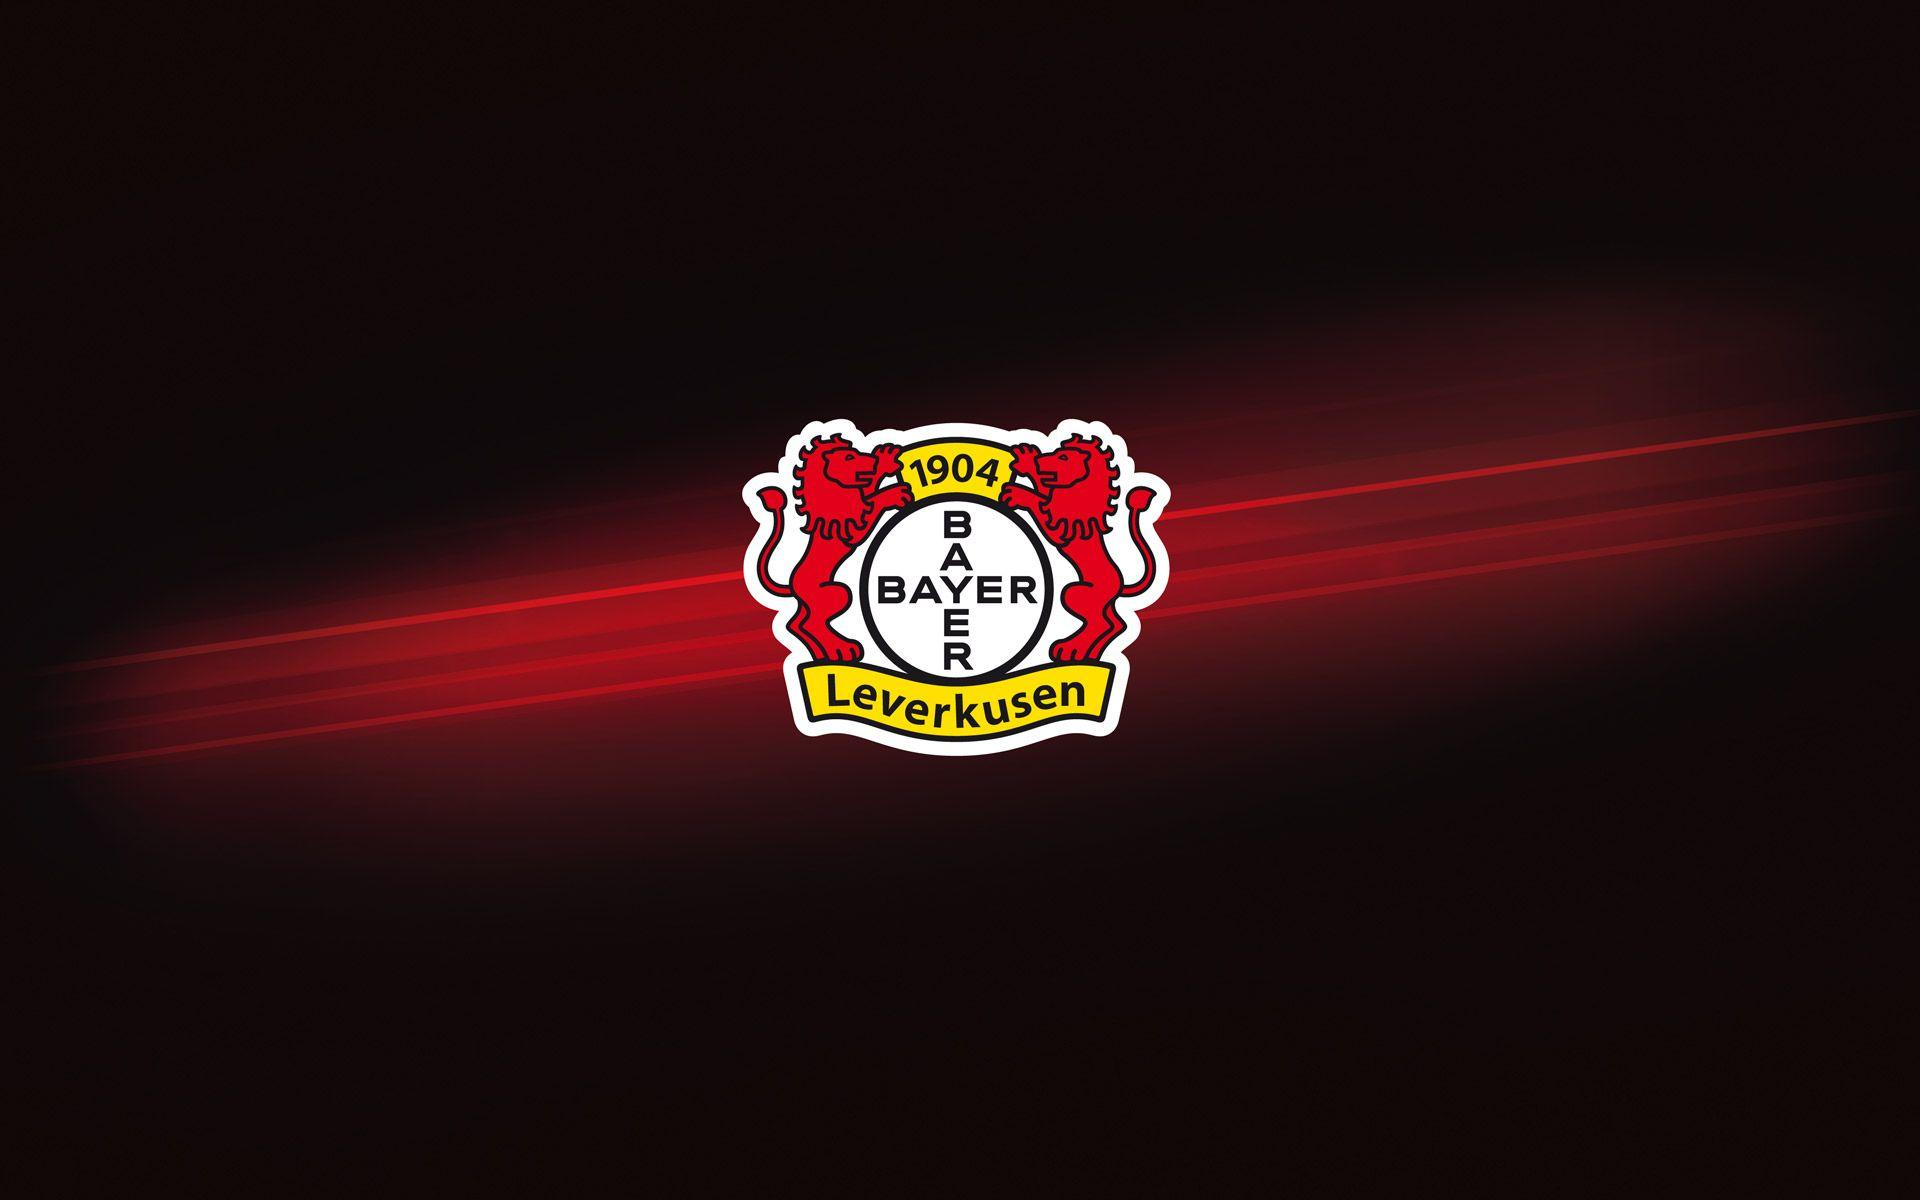 Bayer 04 Leverkusen Wallpapers and Background Images - stmed.net